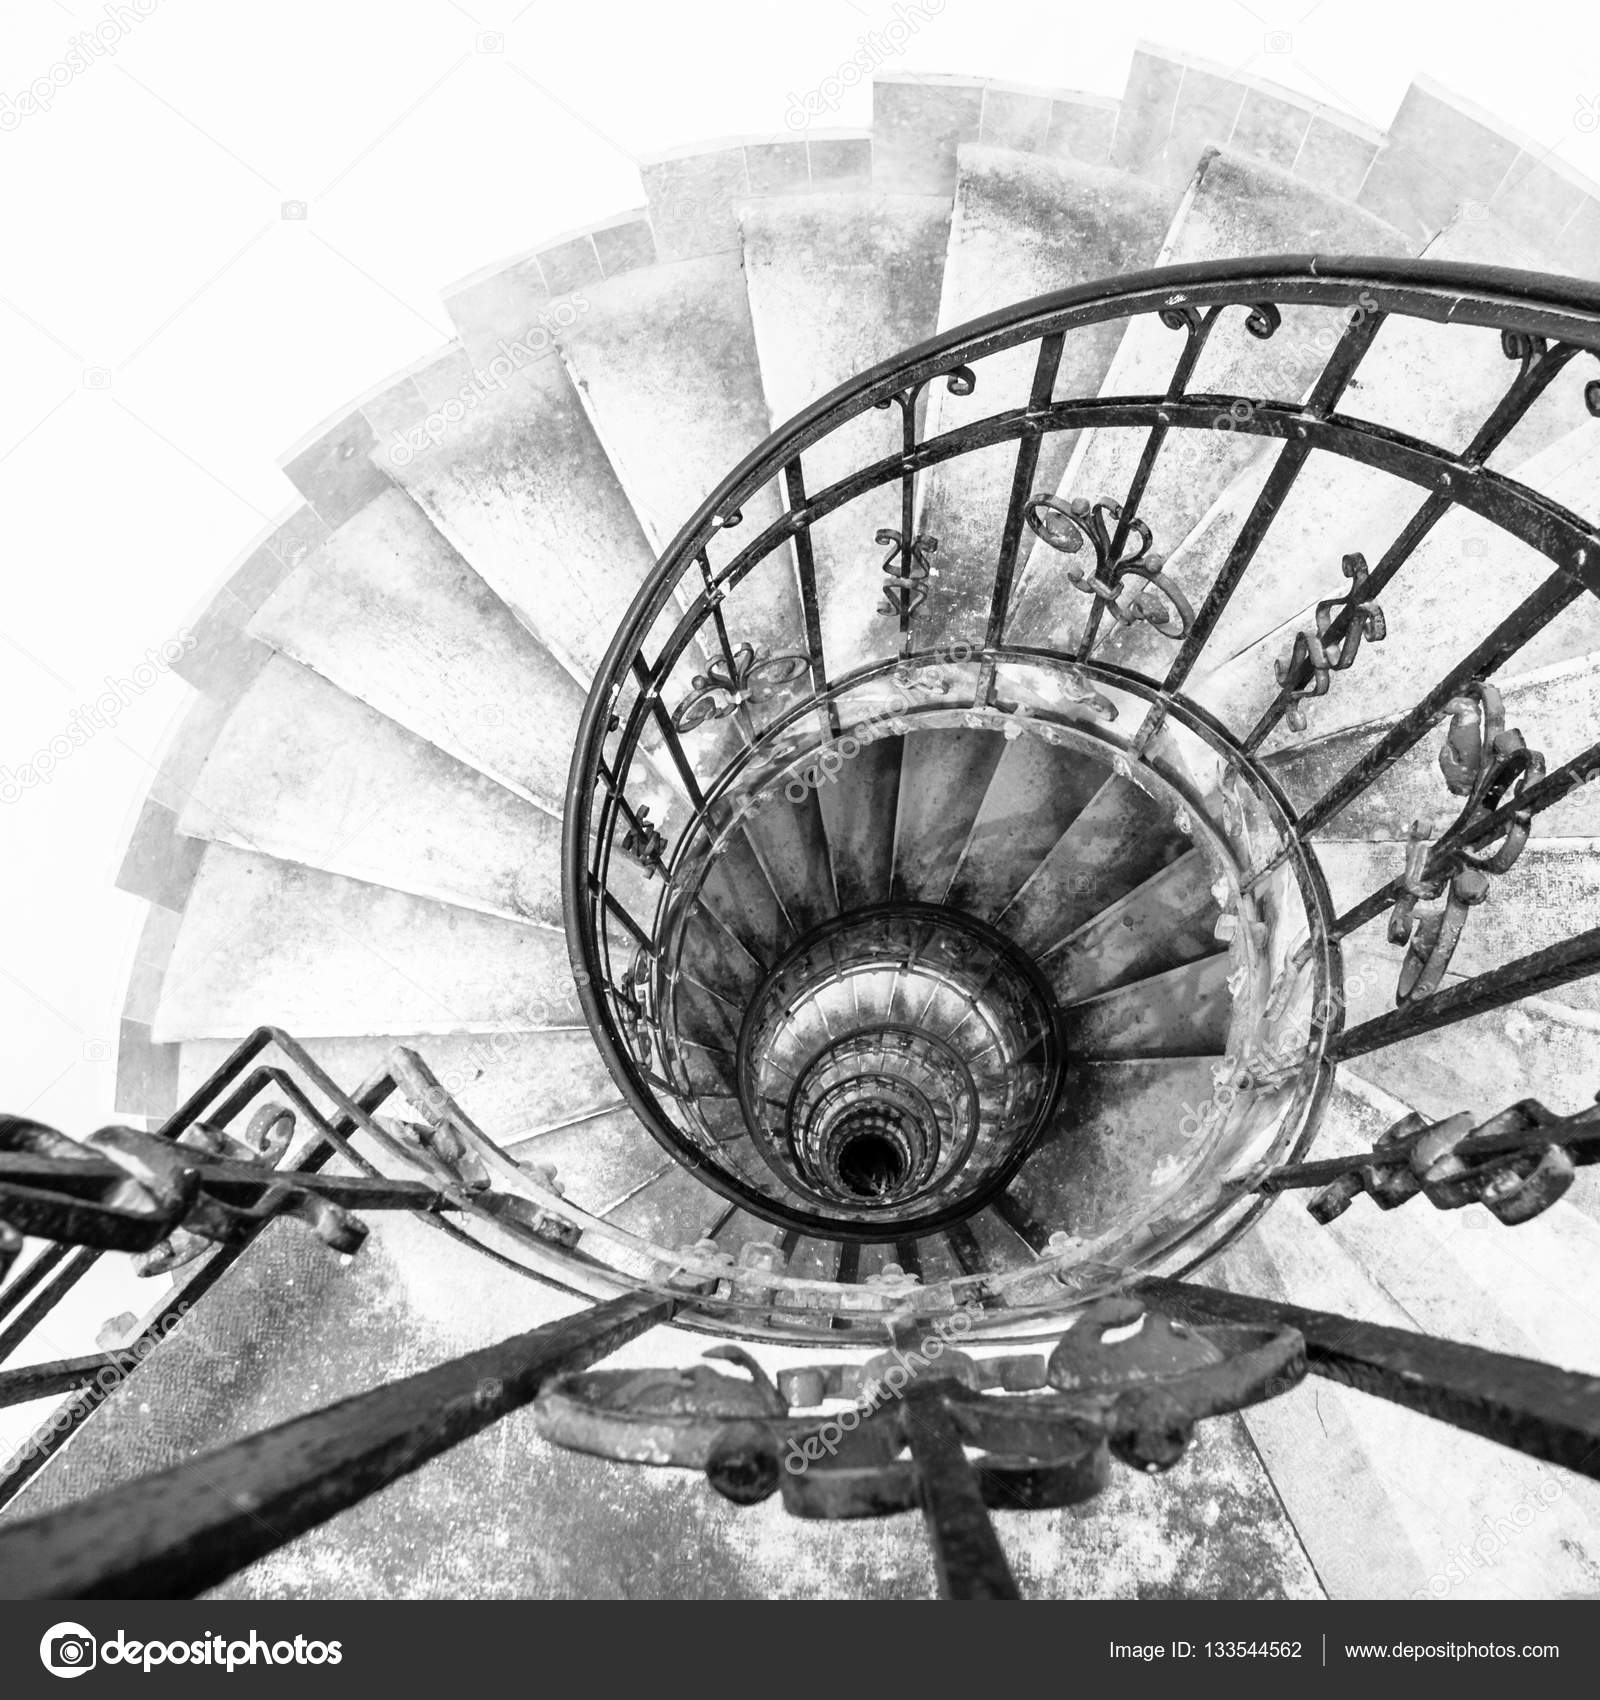 Upside View Of Indoor Spiral Winding Staircase With Black Metal Ornamental  Handrail U2014 Stock Photo